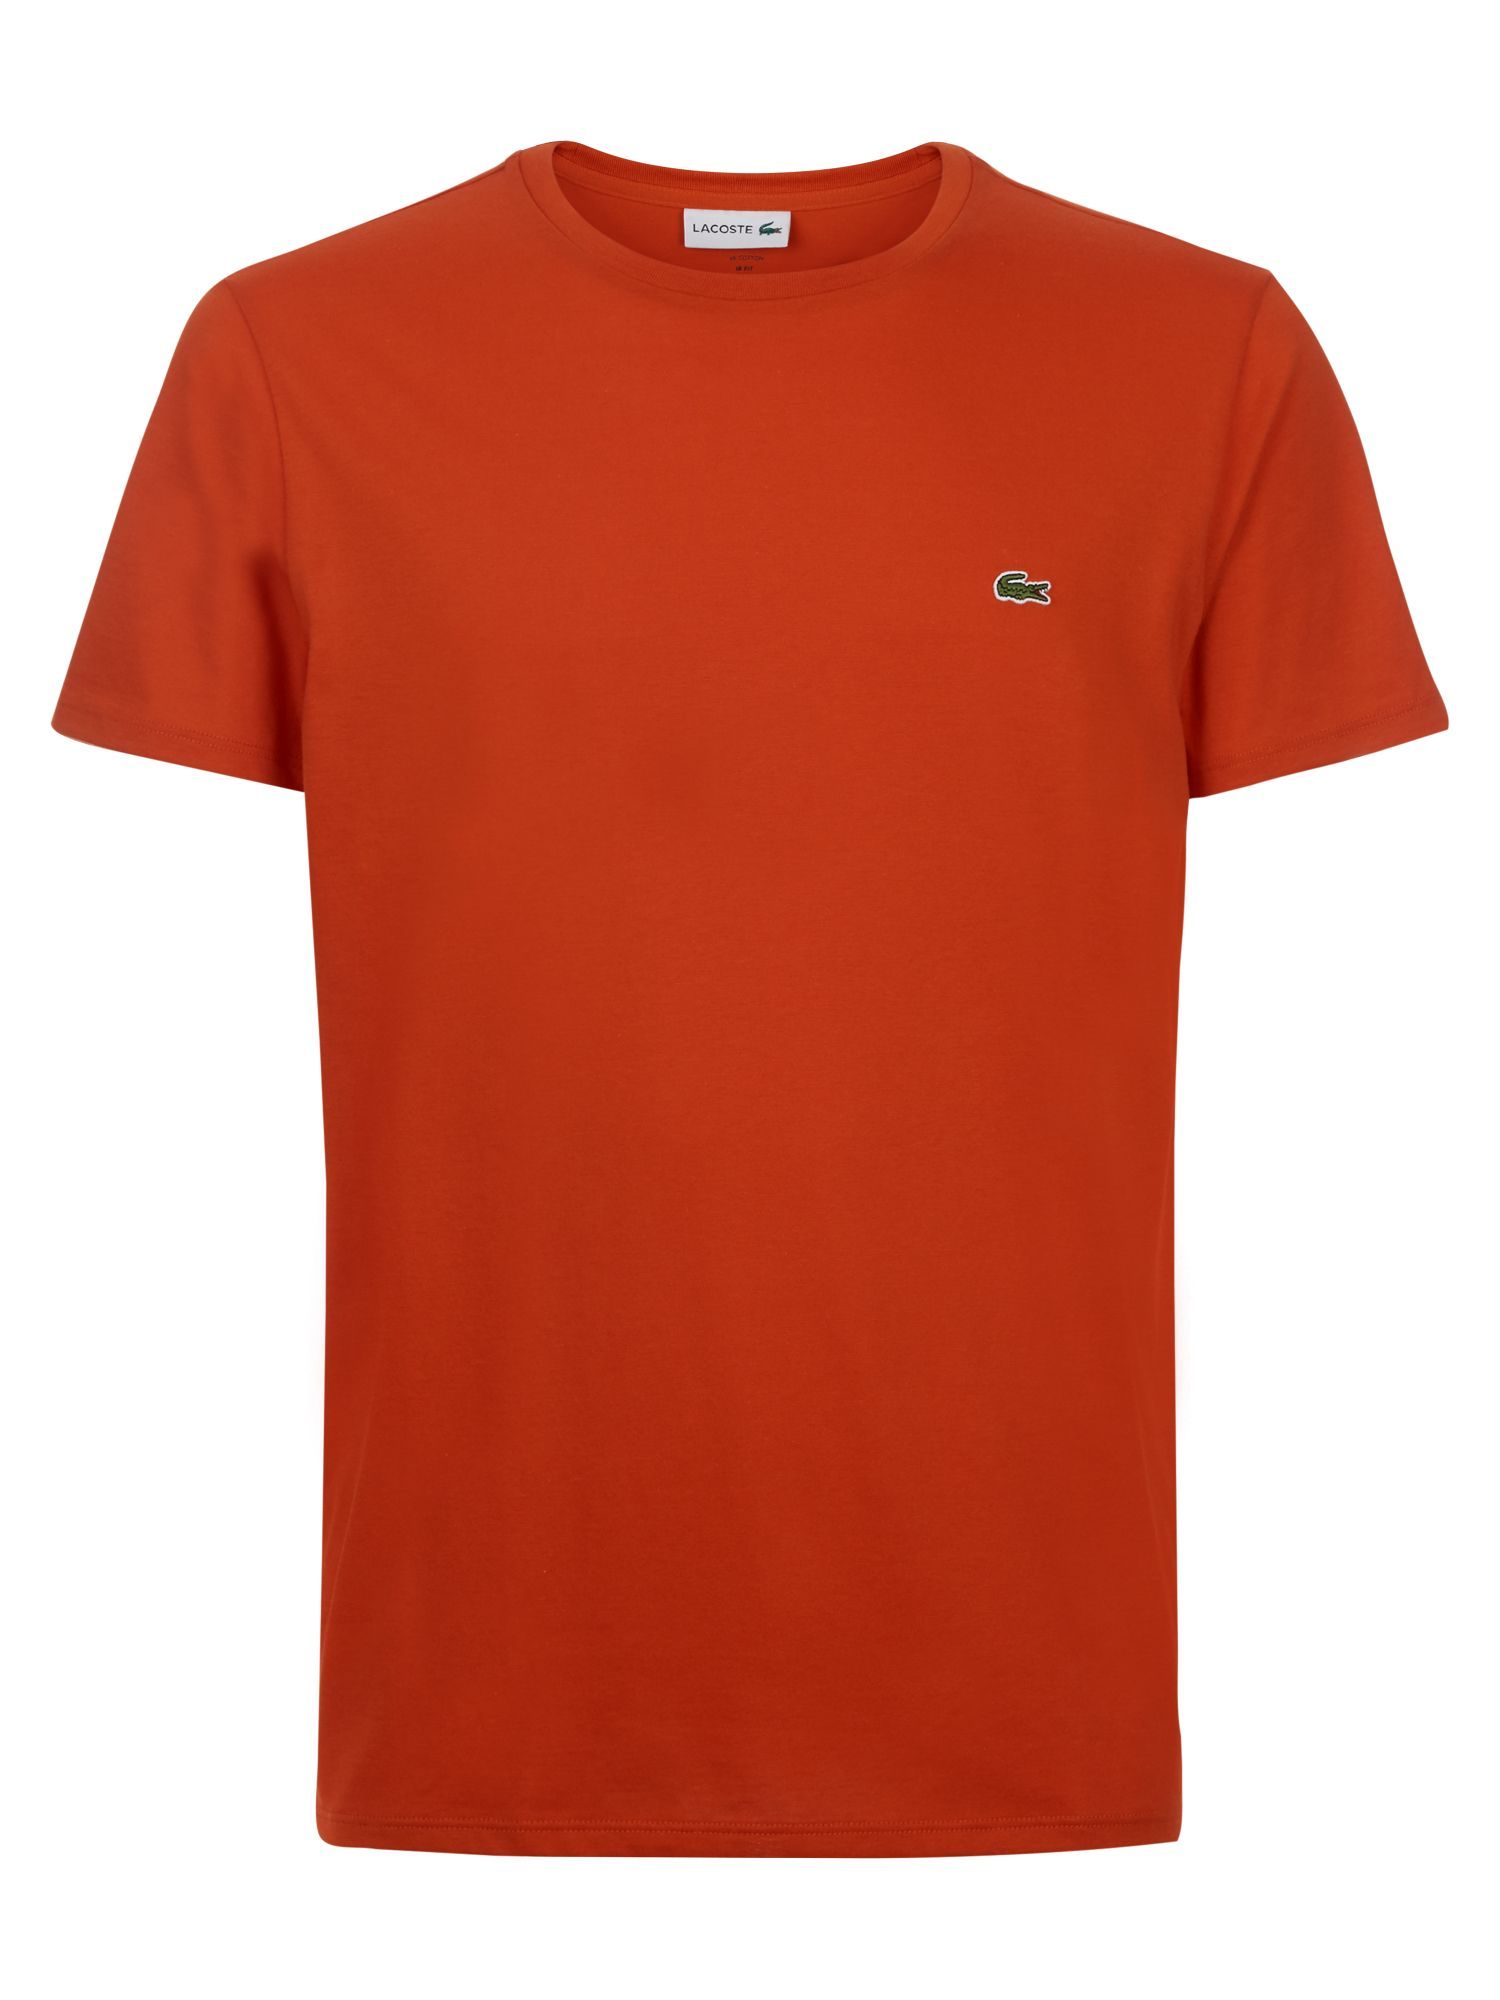 Men's Lacoste Crew Neck Cotton T-shirt, Colorado